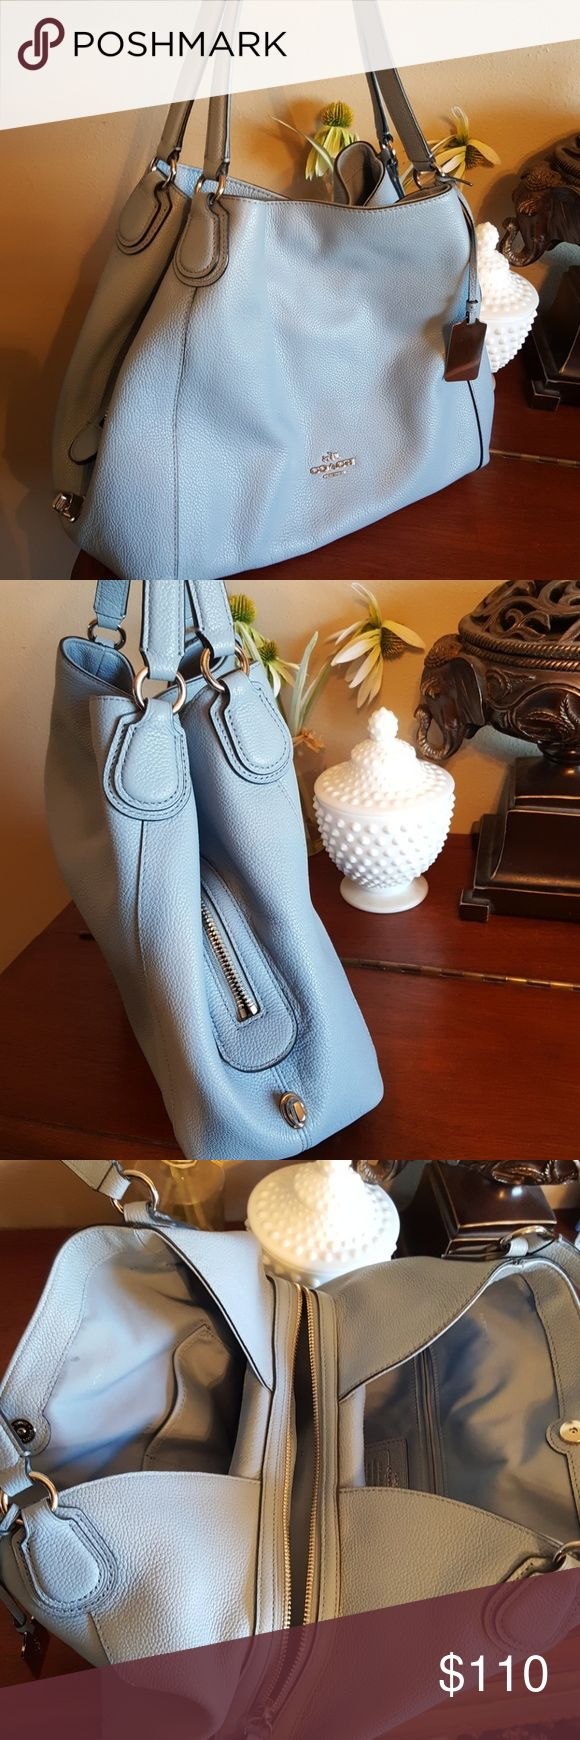 COACH Blue Shoulder Bag Beautiful baby blue pebbled leather Coach shoulder bag in great condition! There is a small mark on the inside lining per photo #5, and the silvertone hang tag has a few scratches in it, other than that it looks wonderful. Arrives in brand new generic white dust bag (not a Coach dust bag).  Price firm. Coach Bags Shoulder Bags